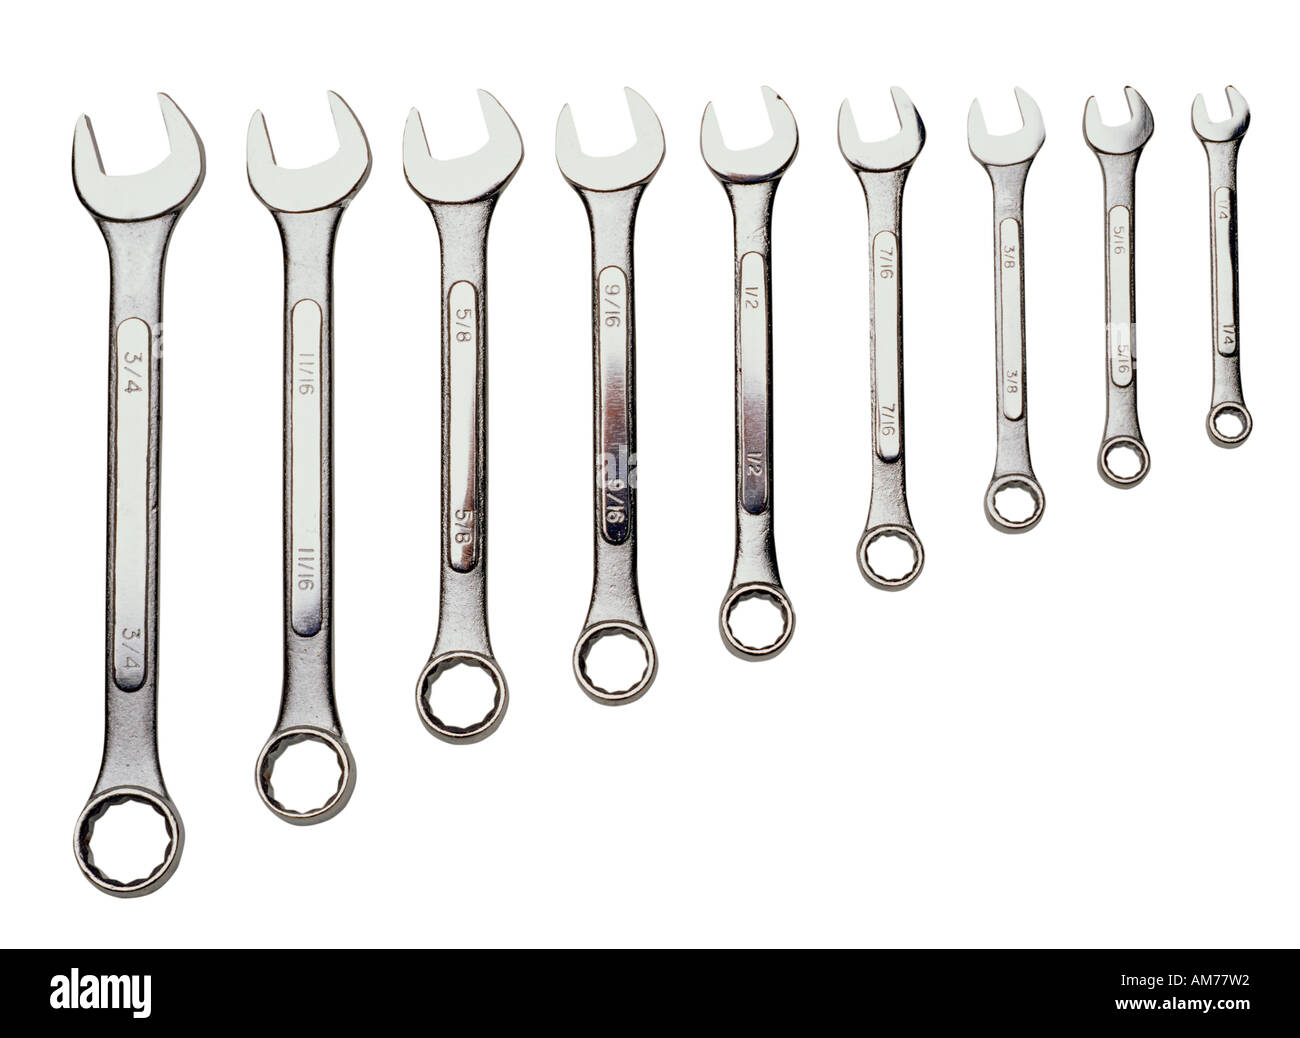 A set of spanners - Stock Image